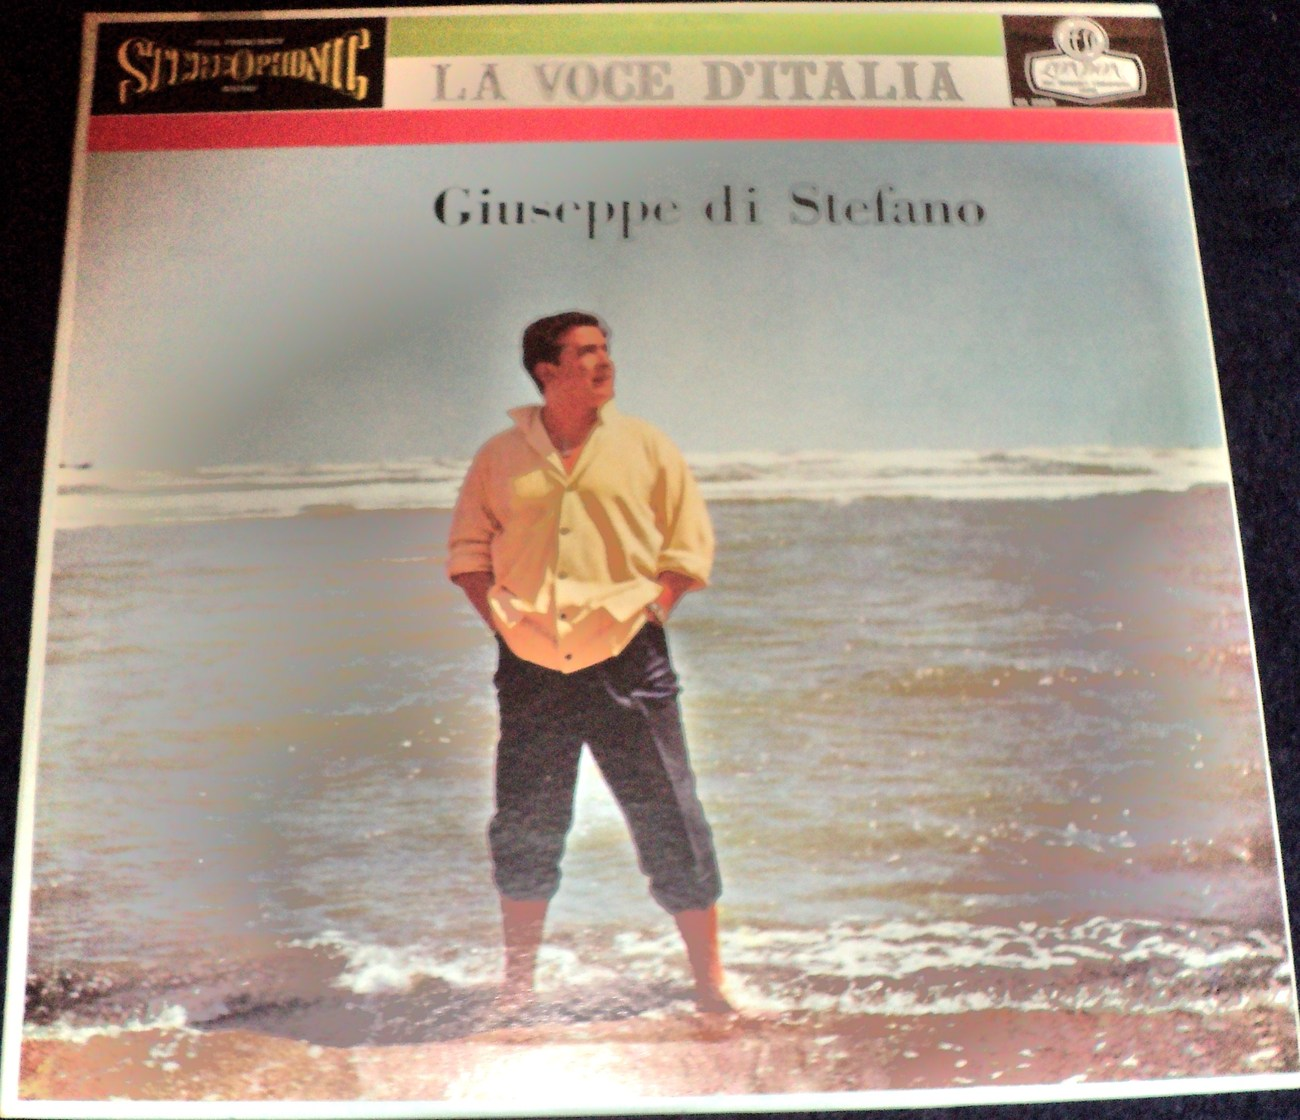 GIUSEPPE DI STEFANO: LA VOCE D'ITALIA LP WITH ORCHESTRA CONDUCTED BY DINO OLIVIE